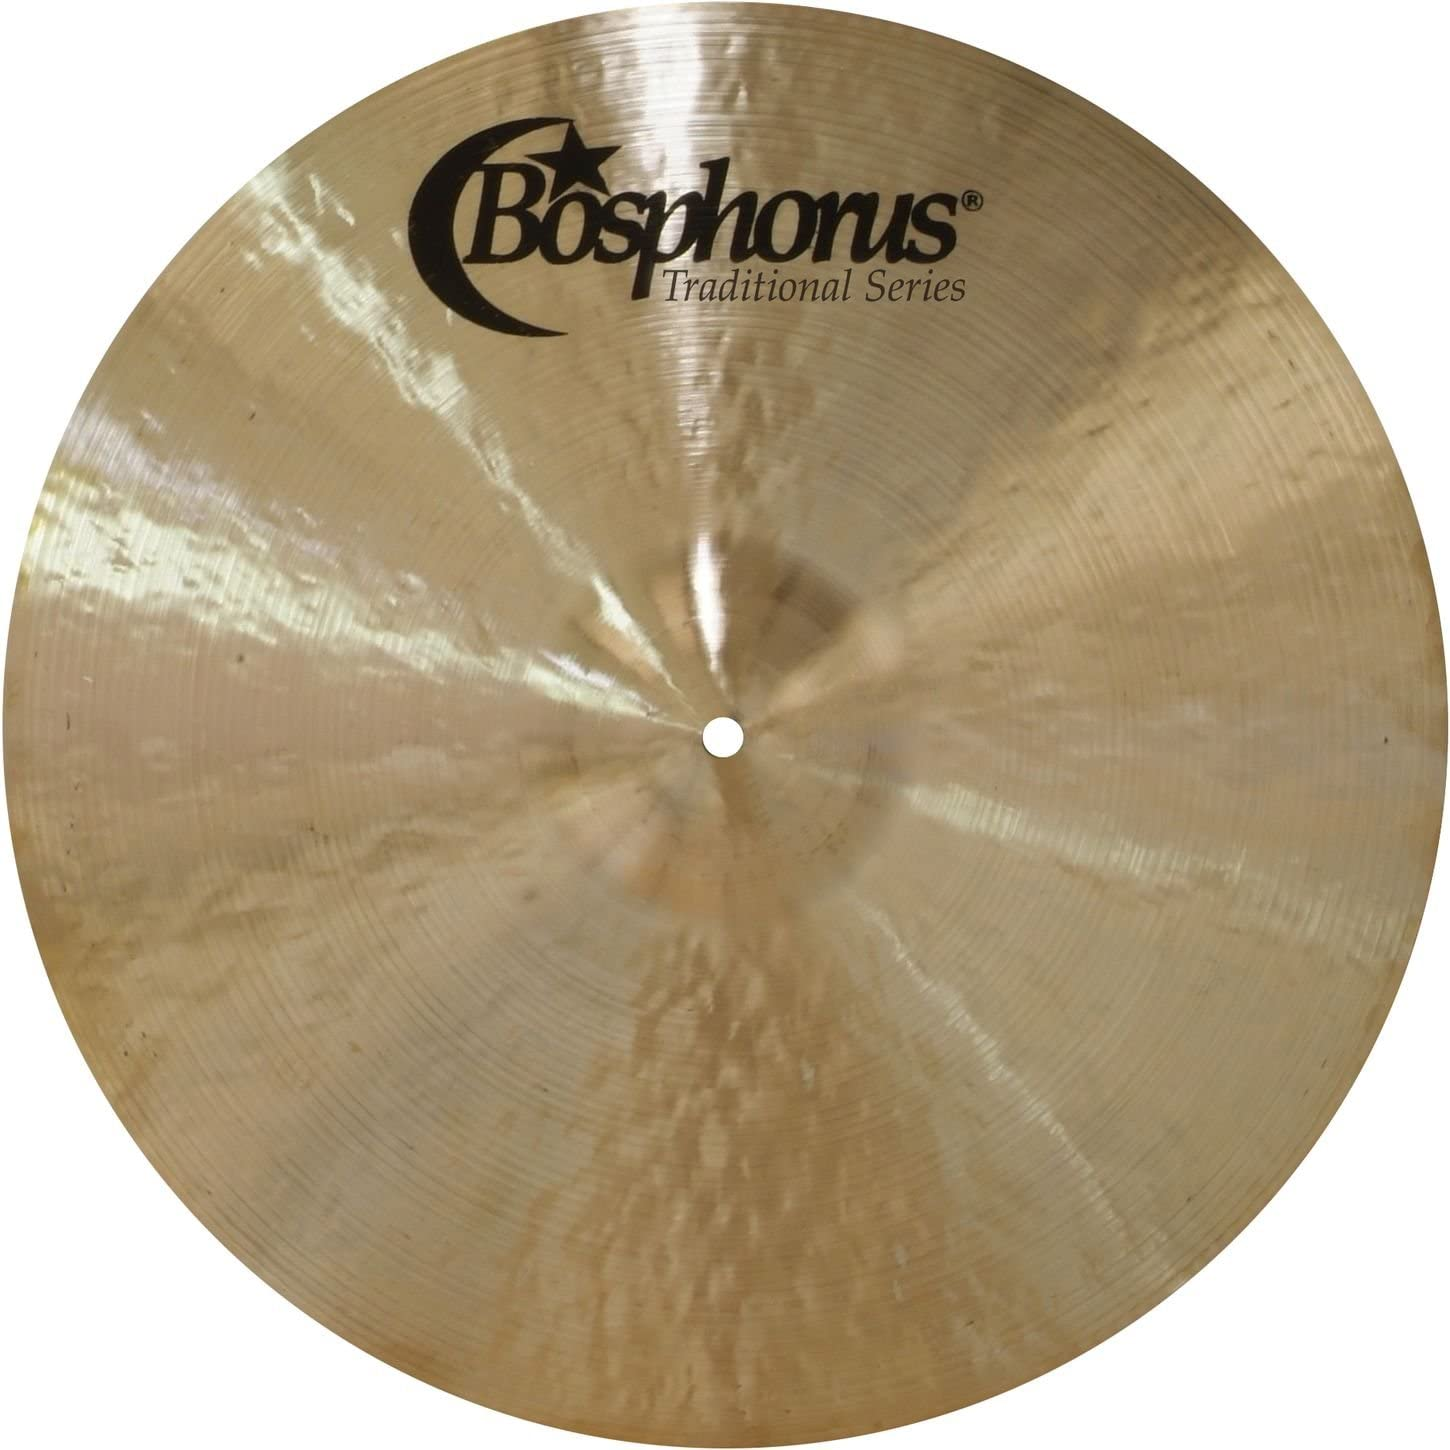 Factory outlet Bosphorus Cymbals T22R 22-Inch Ride Cymbal Detroit Mall Series Traditional